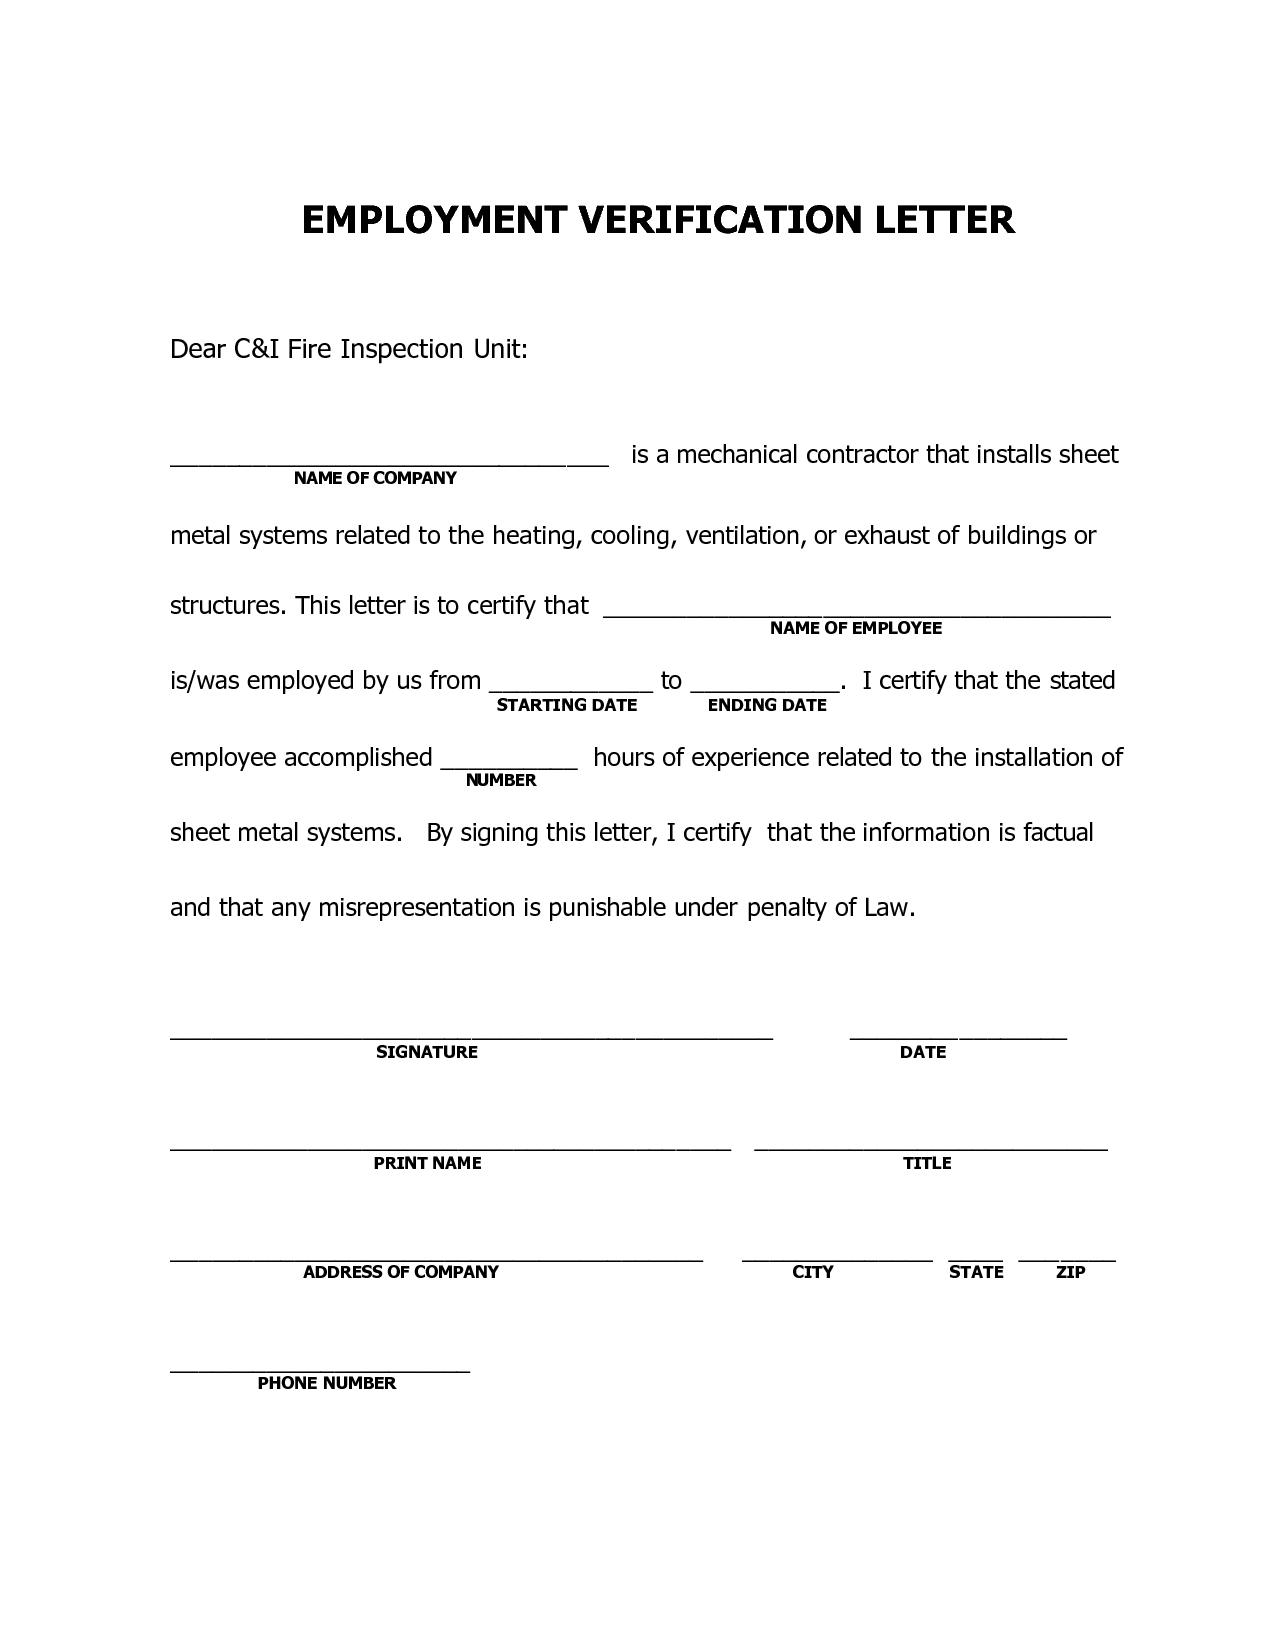 Letter Sample Residence Certification For Payment Salary